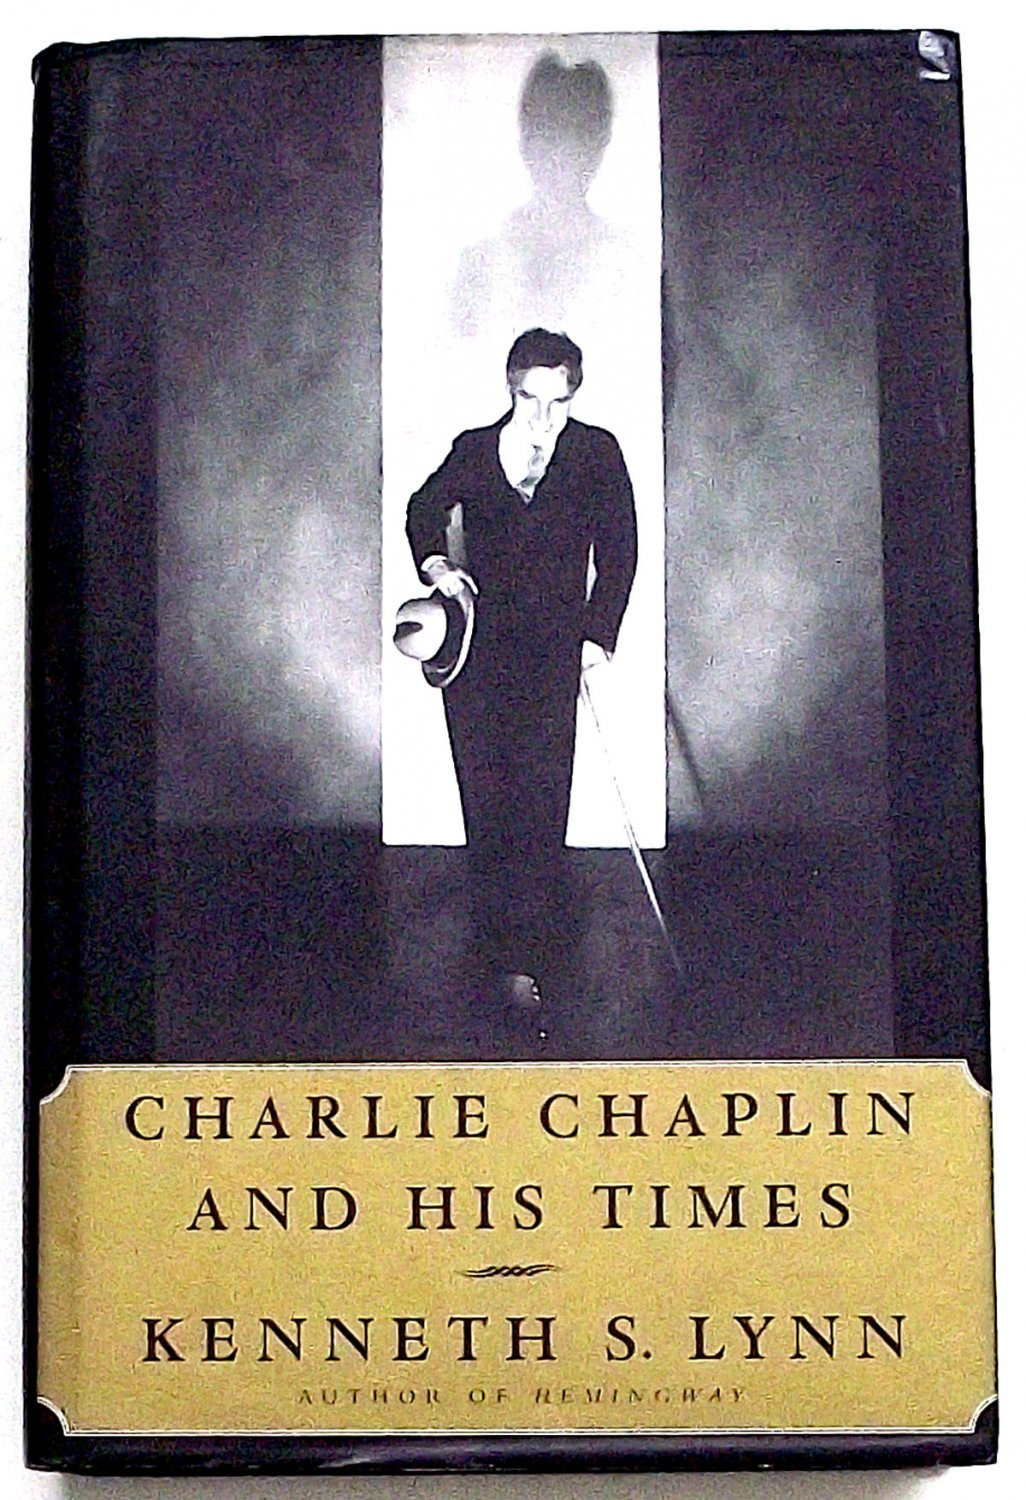 Charlie Chaplin and His Times by Kenneth S. Lynn First Edition 1998